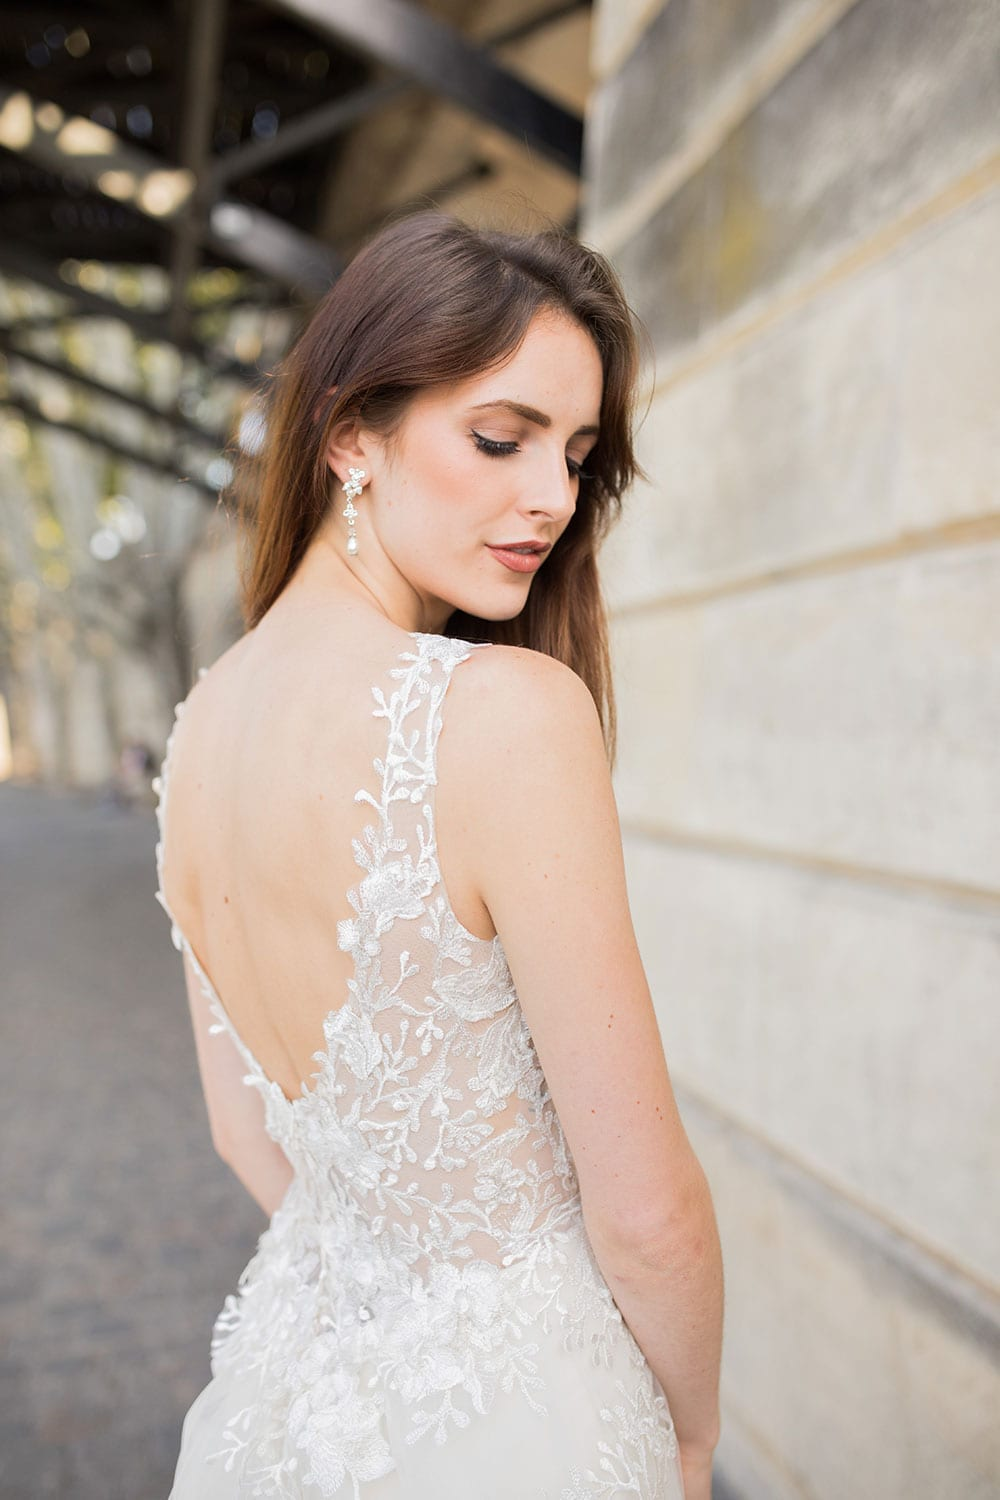 Model wearing Vinka Design Delta Wedding Dress, a Sheer Embroidered Lace Wedding Gown showing low back detail next to the Seine in Paris